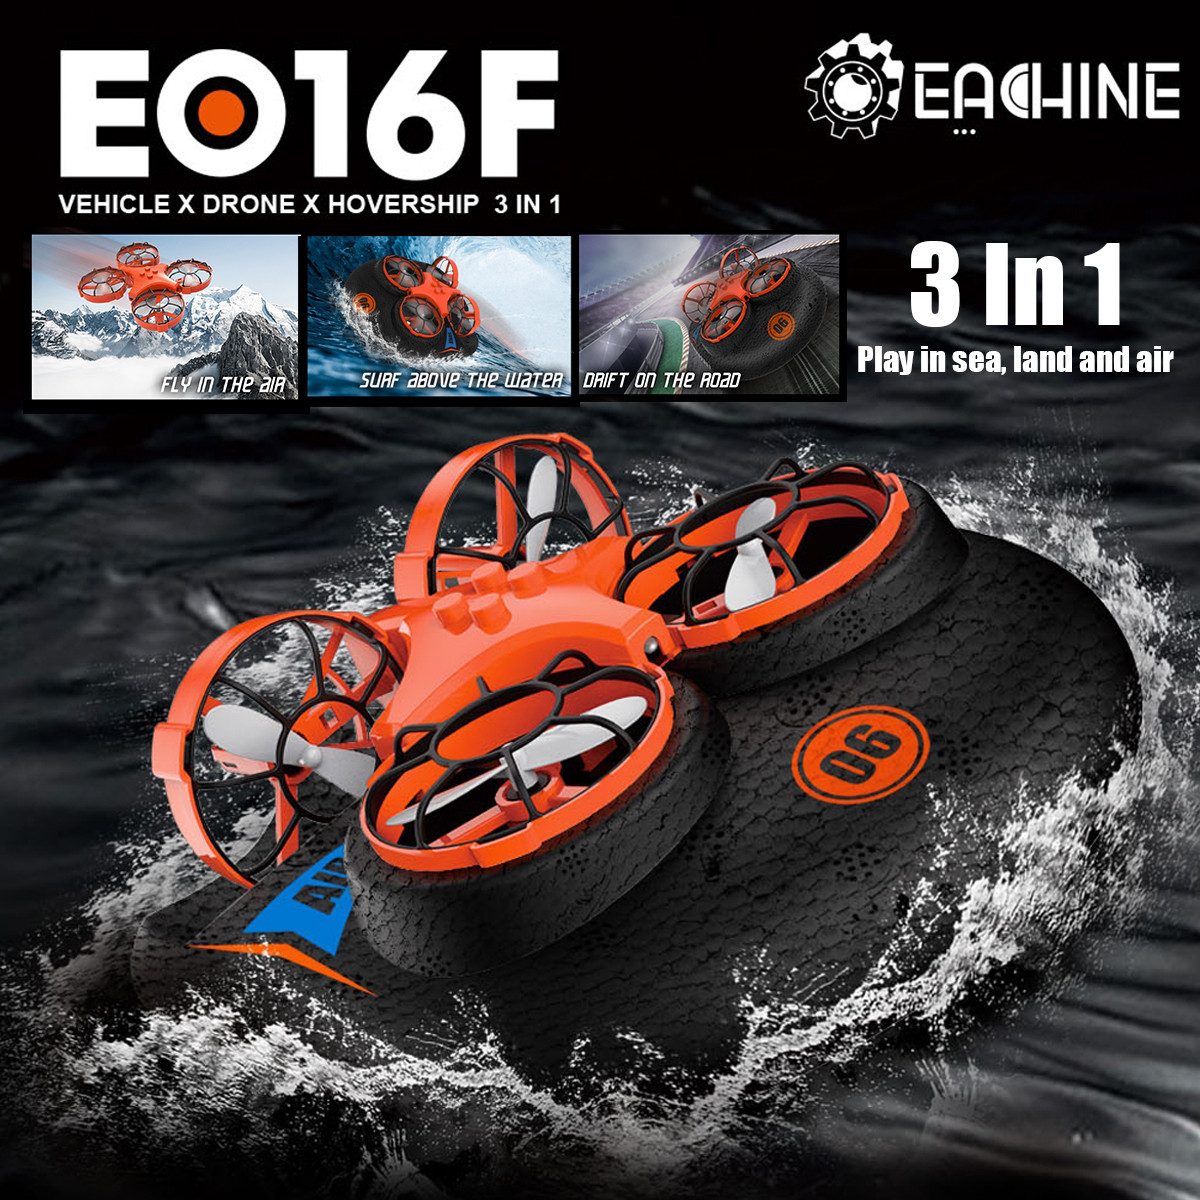 Eachine E016F 3-in-1 EPP Flying Air Boat Land Driving Mode Detachable RC Drone Quadcopter For kid Gift(China)